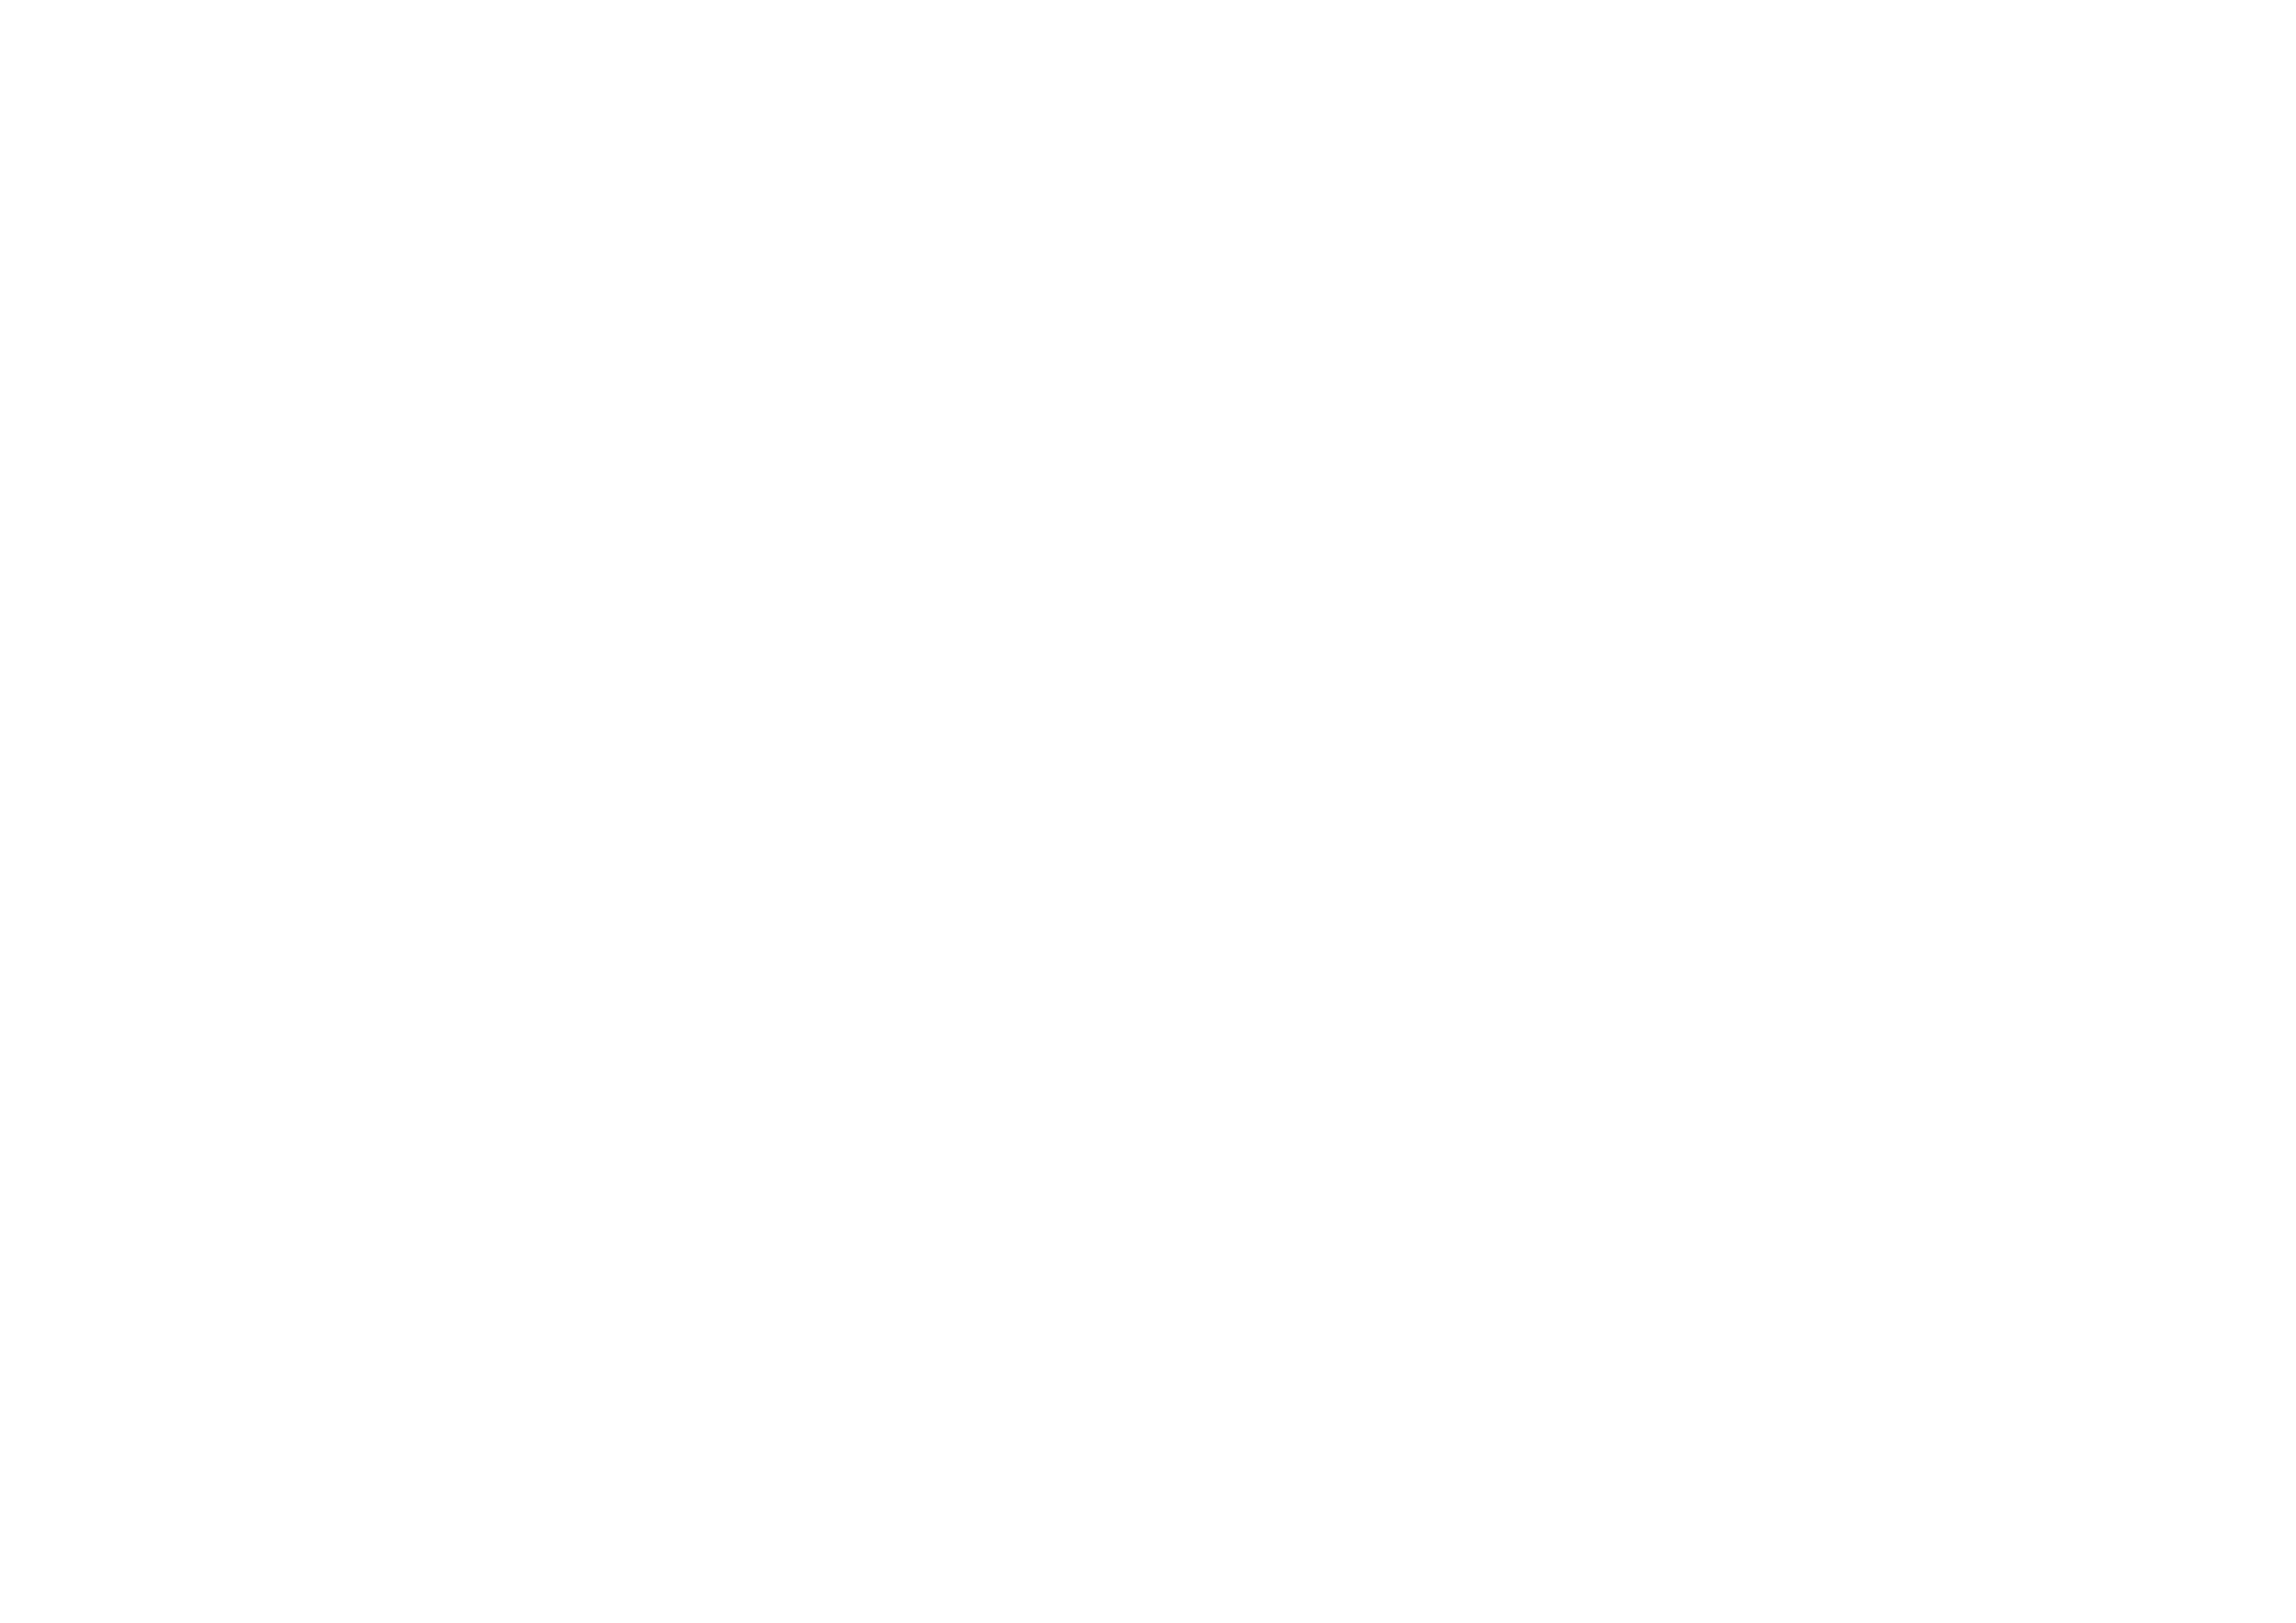 Earth+Me - Quality Sustainable Living logo white-01.png